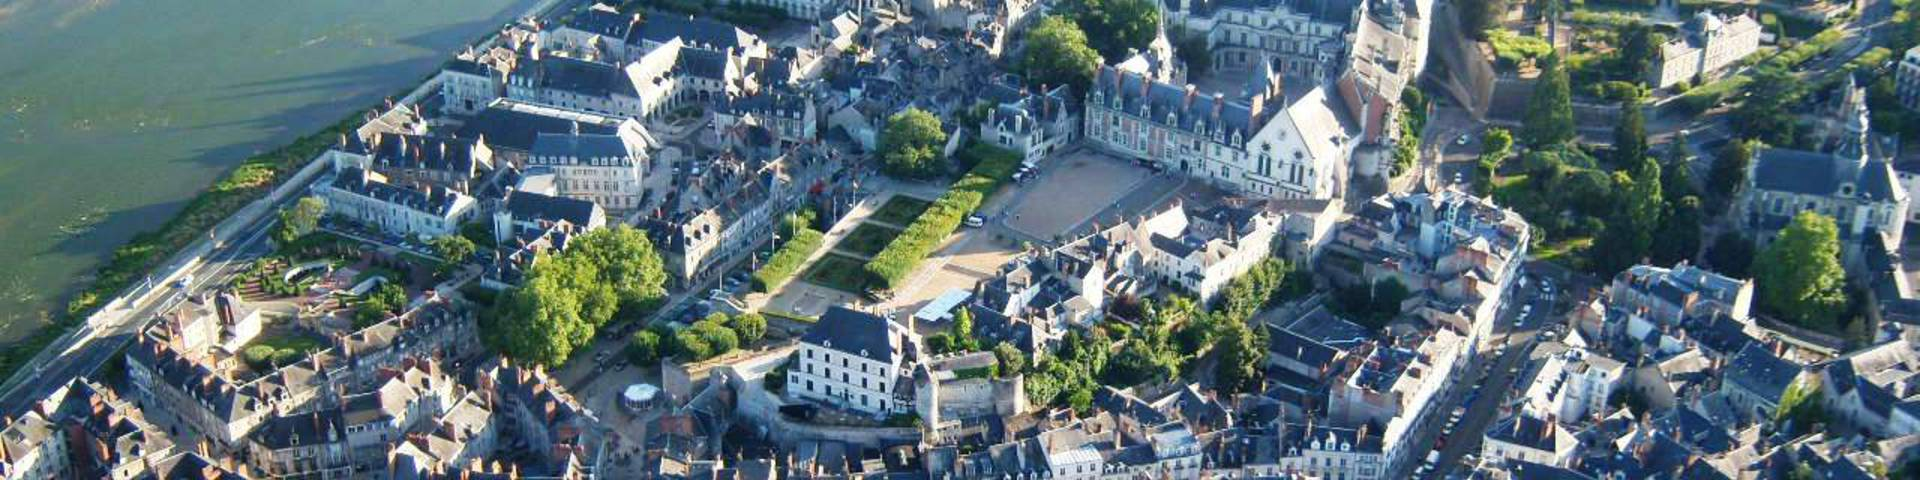 The city of Blois and its Royal Castle seen from the sky. © OTBC